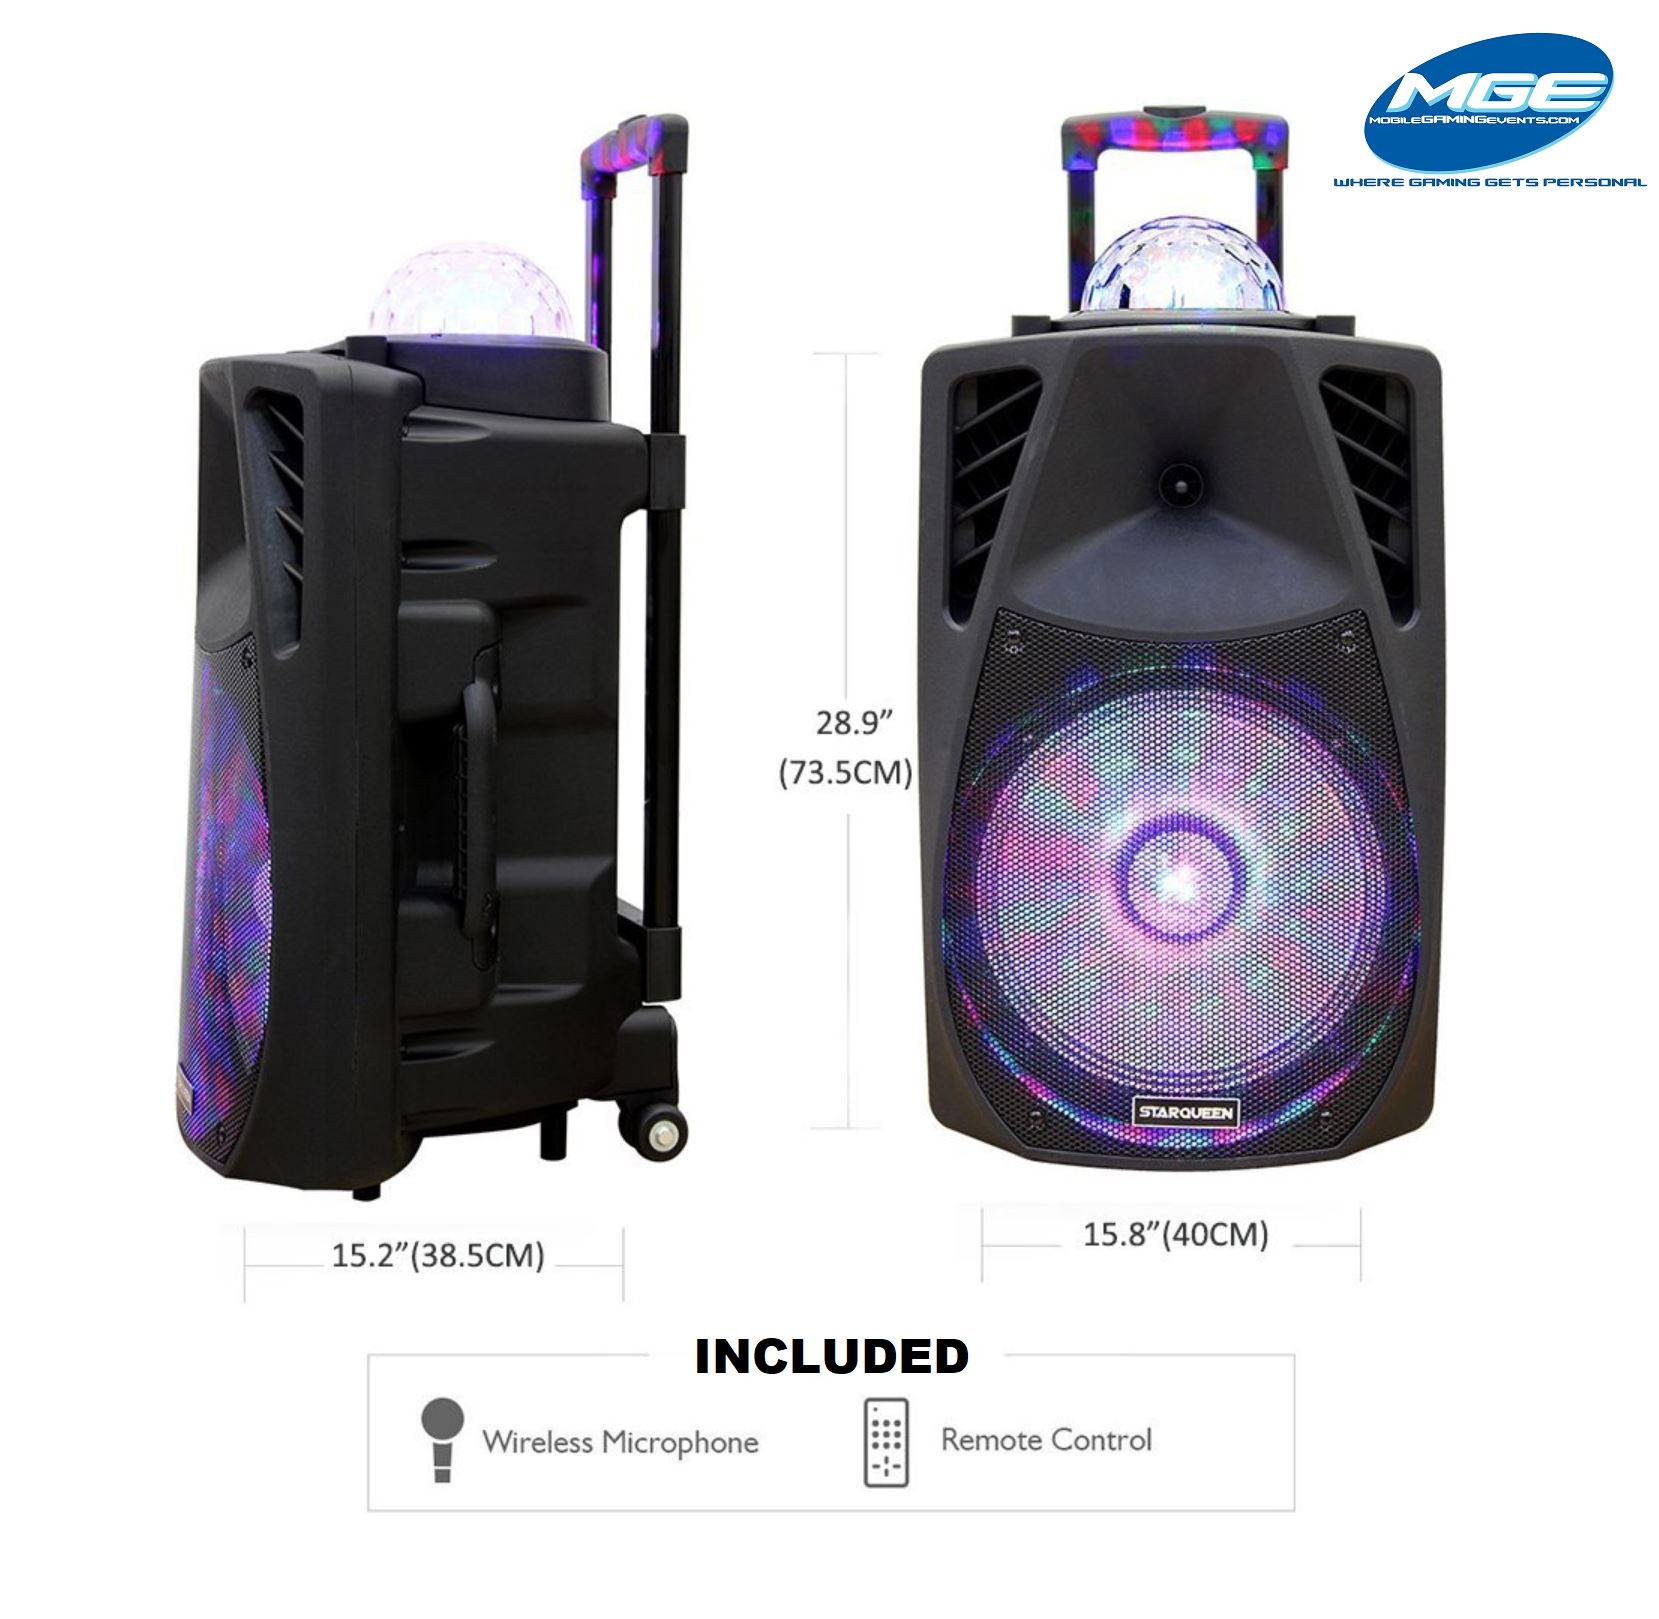 12 Inch LED Light Ball Speaker - Audio Party Rental Service - West Palm Beach 786-423-8759